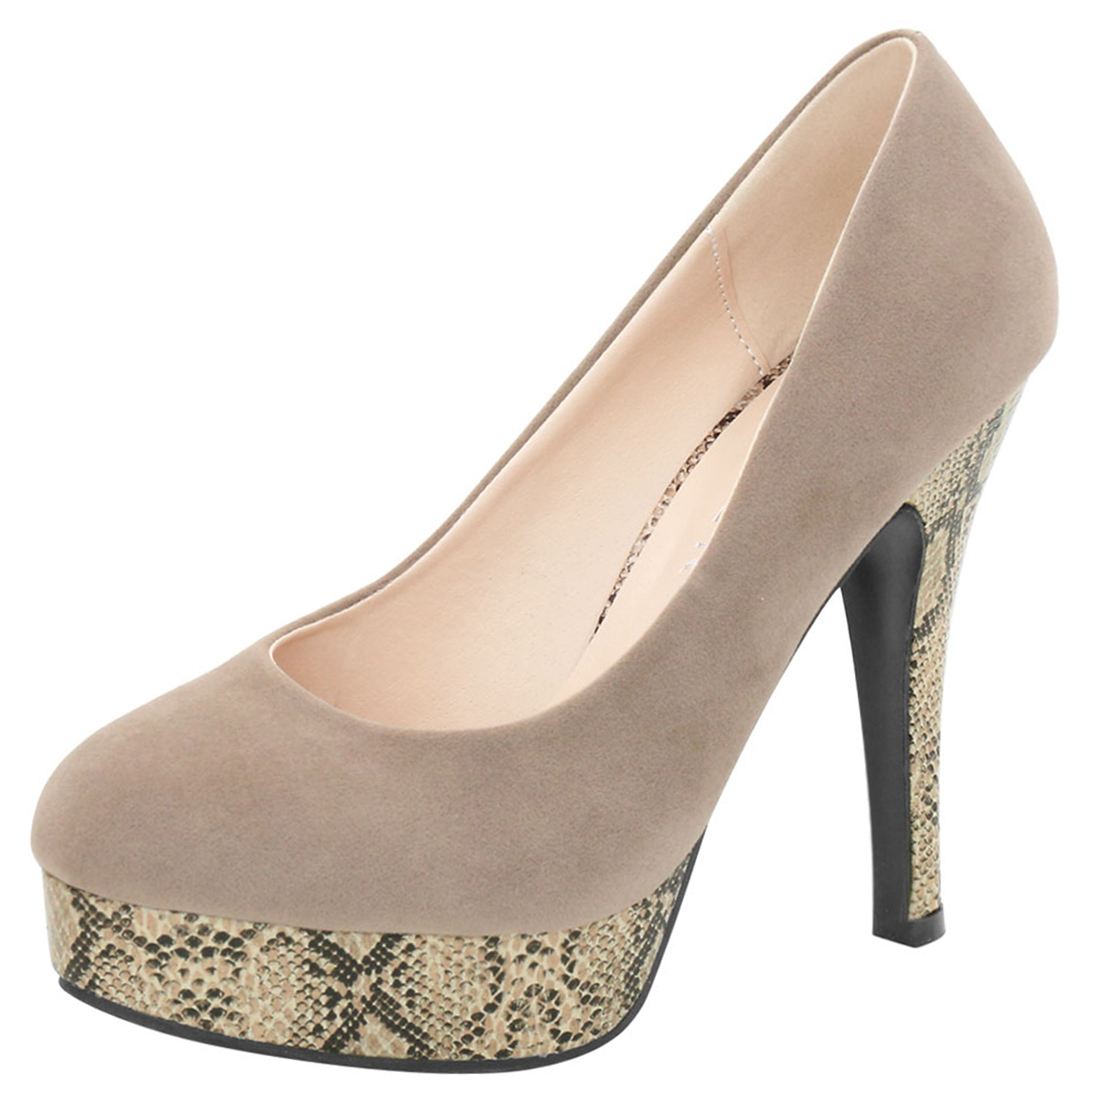 Woman Rounded Toe Snake Effect Stiletto Platform Pumps Taupe US 8.5